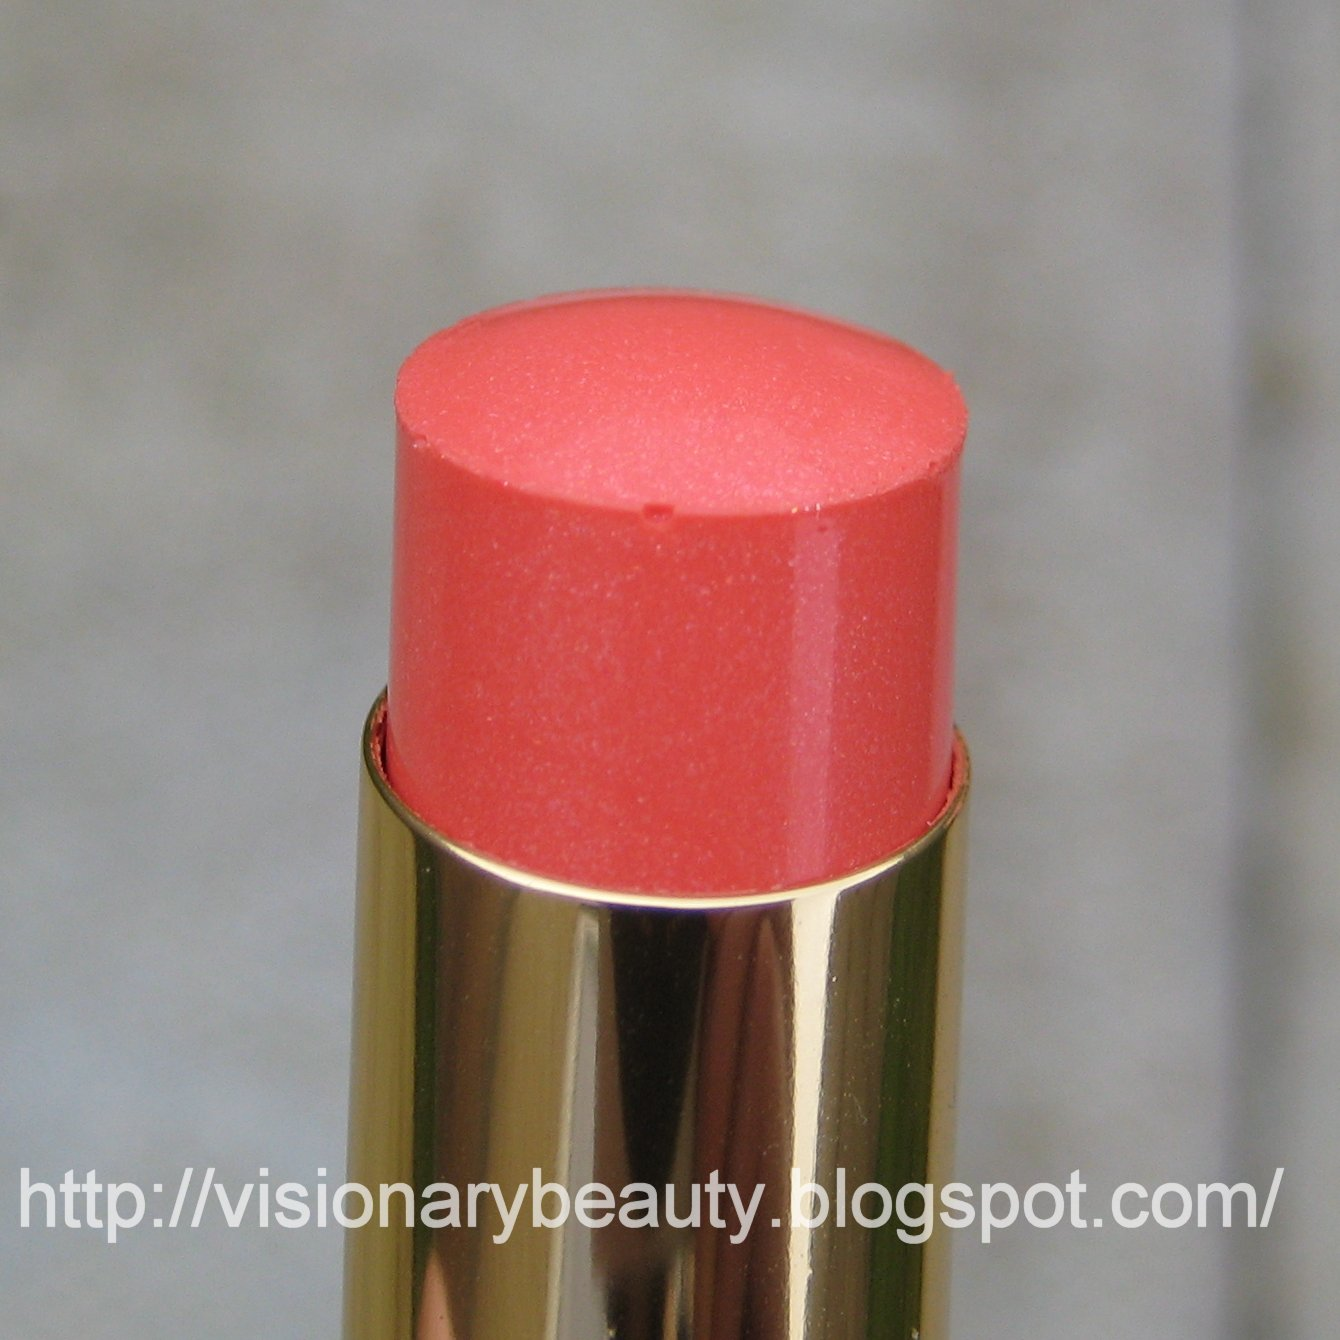 chanel coco shine flirt swatch Chanel #98 etourdie rouge coco shine hydrating sheer lipshine rouge coco shine makes an irresistible desire for lightness flit over your makeup.